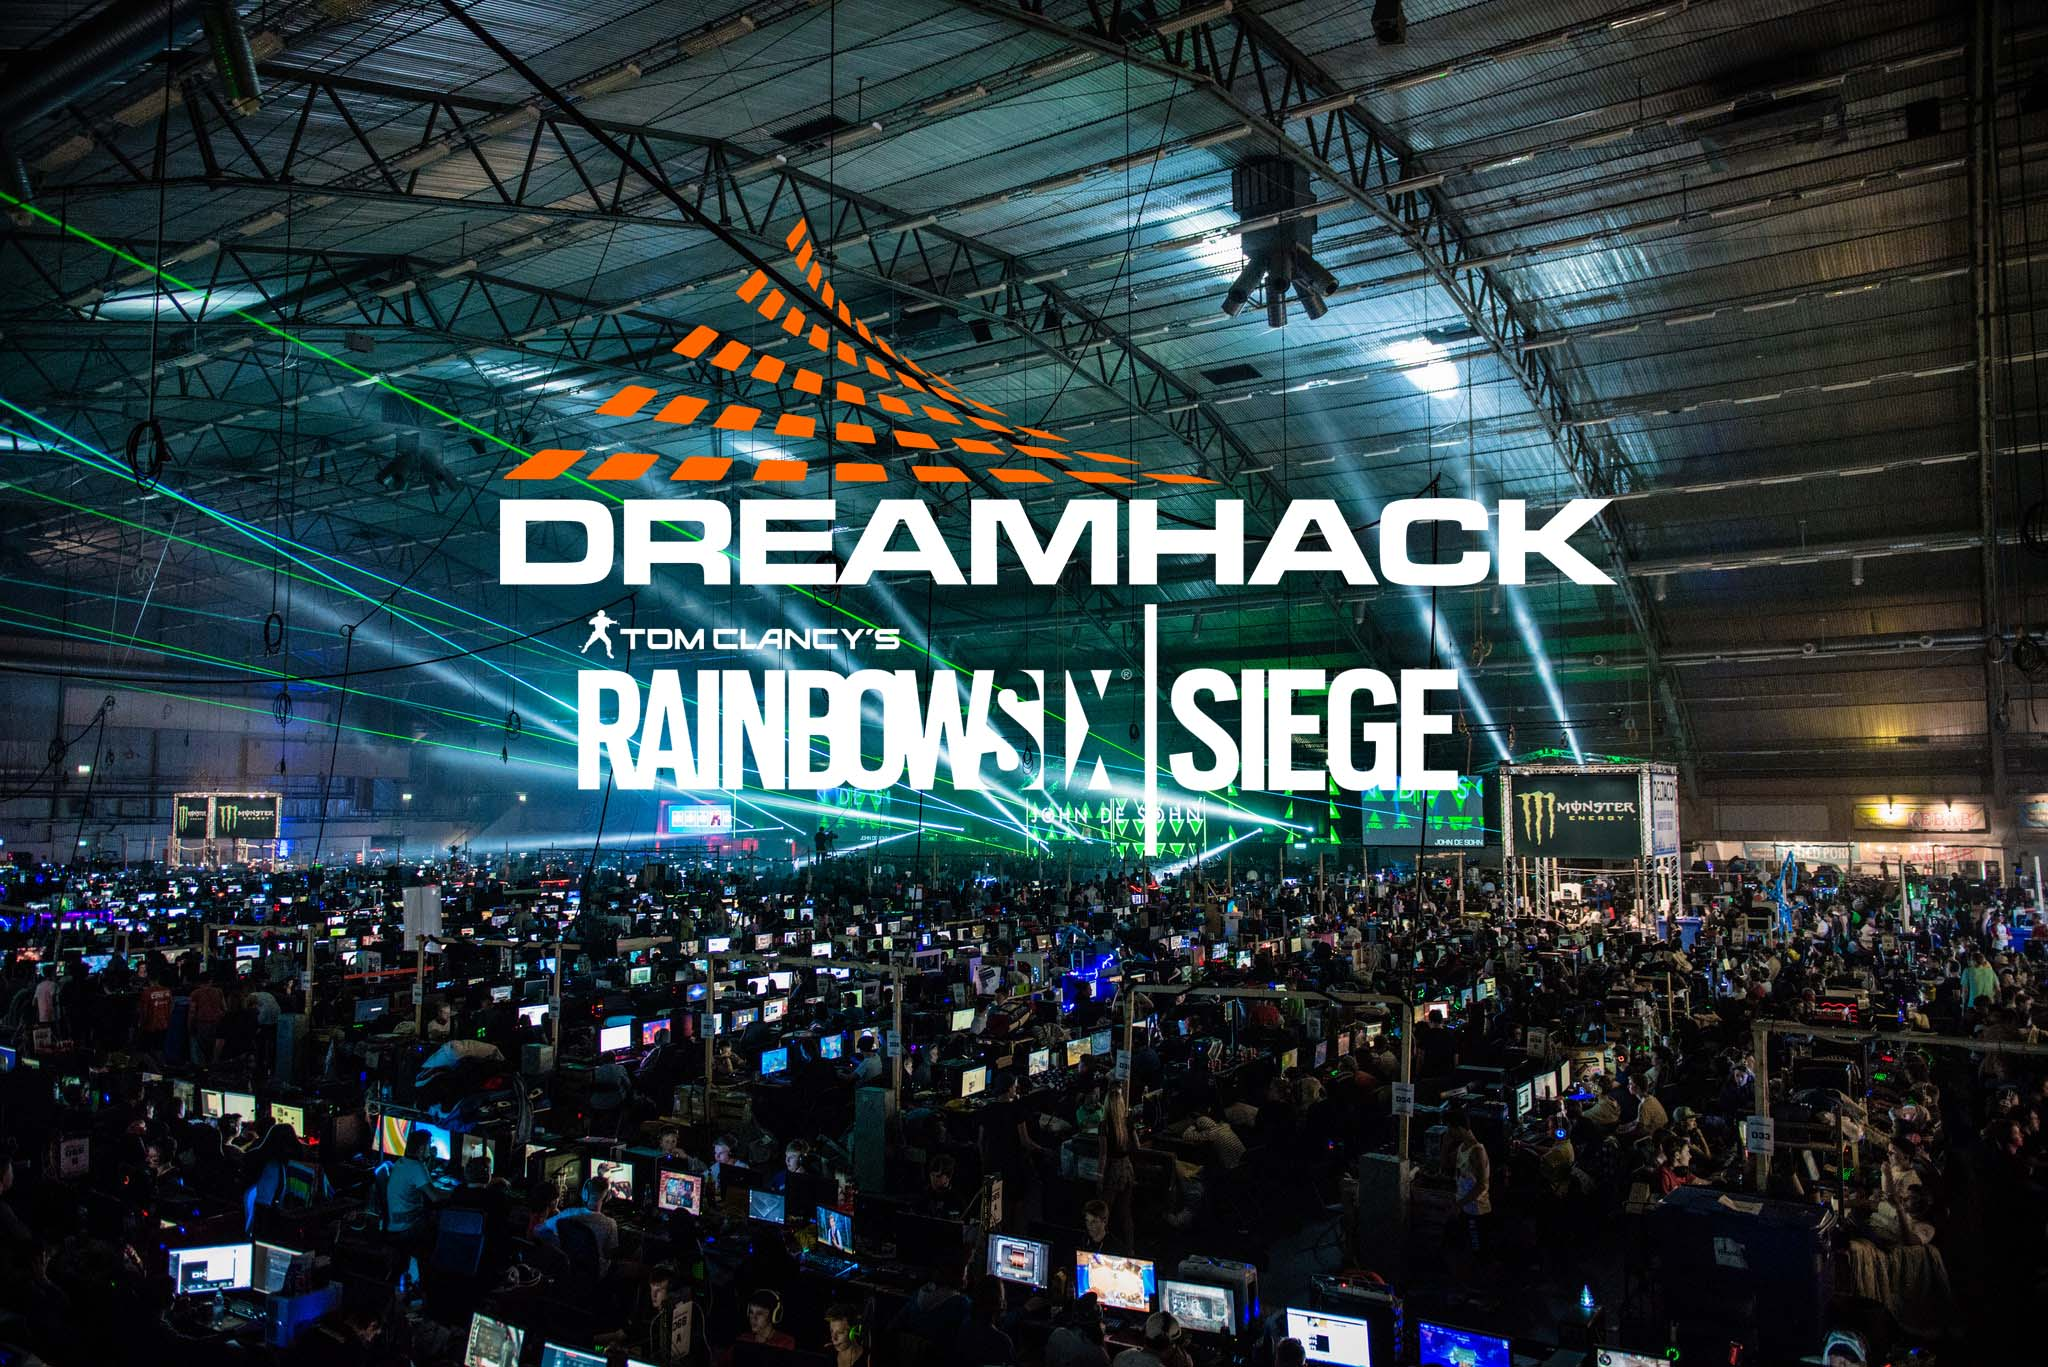 [2018-03-09] Dreamhack Announcement Header